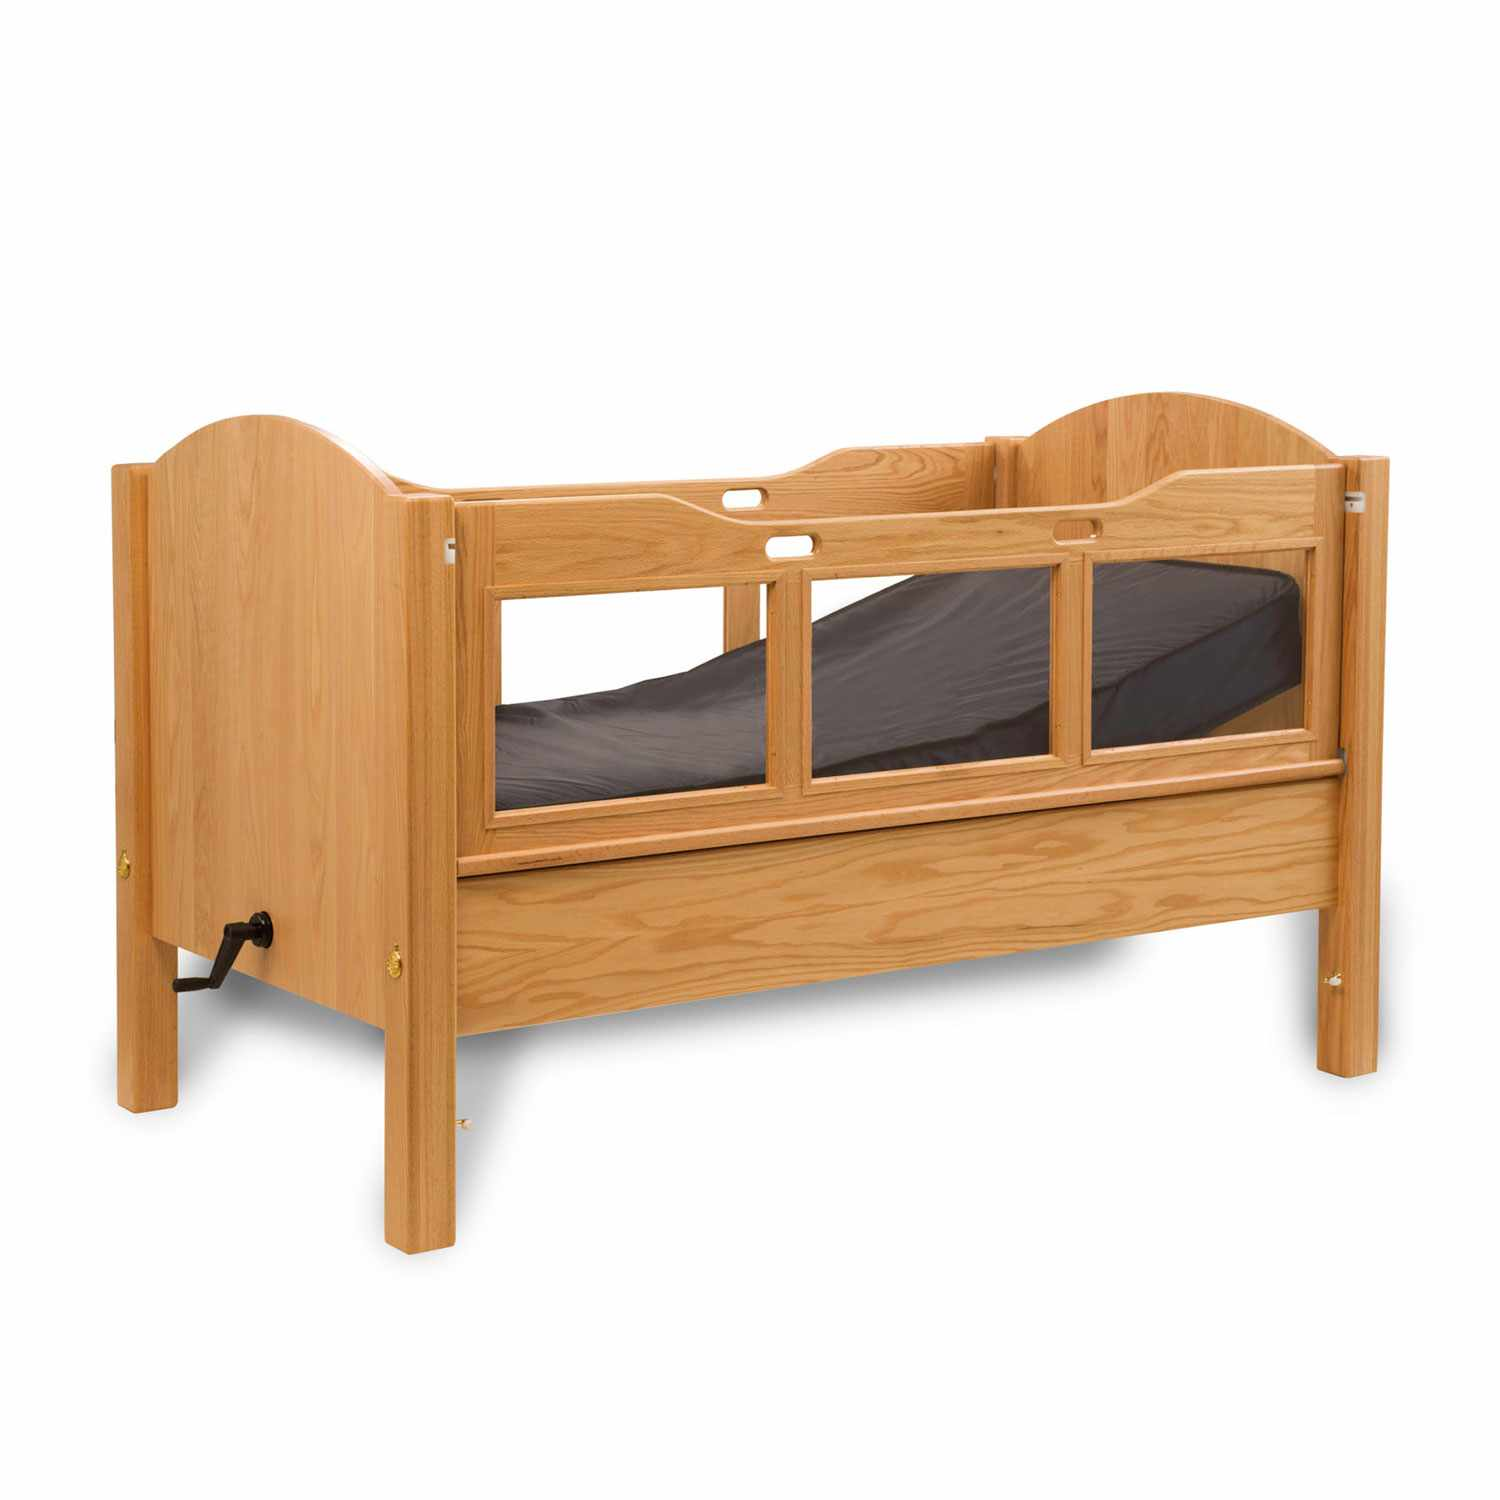 Dream series fixed surface double size bed